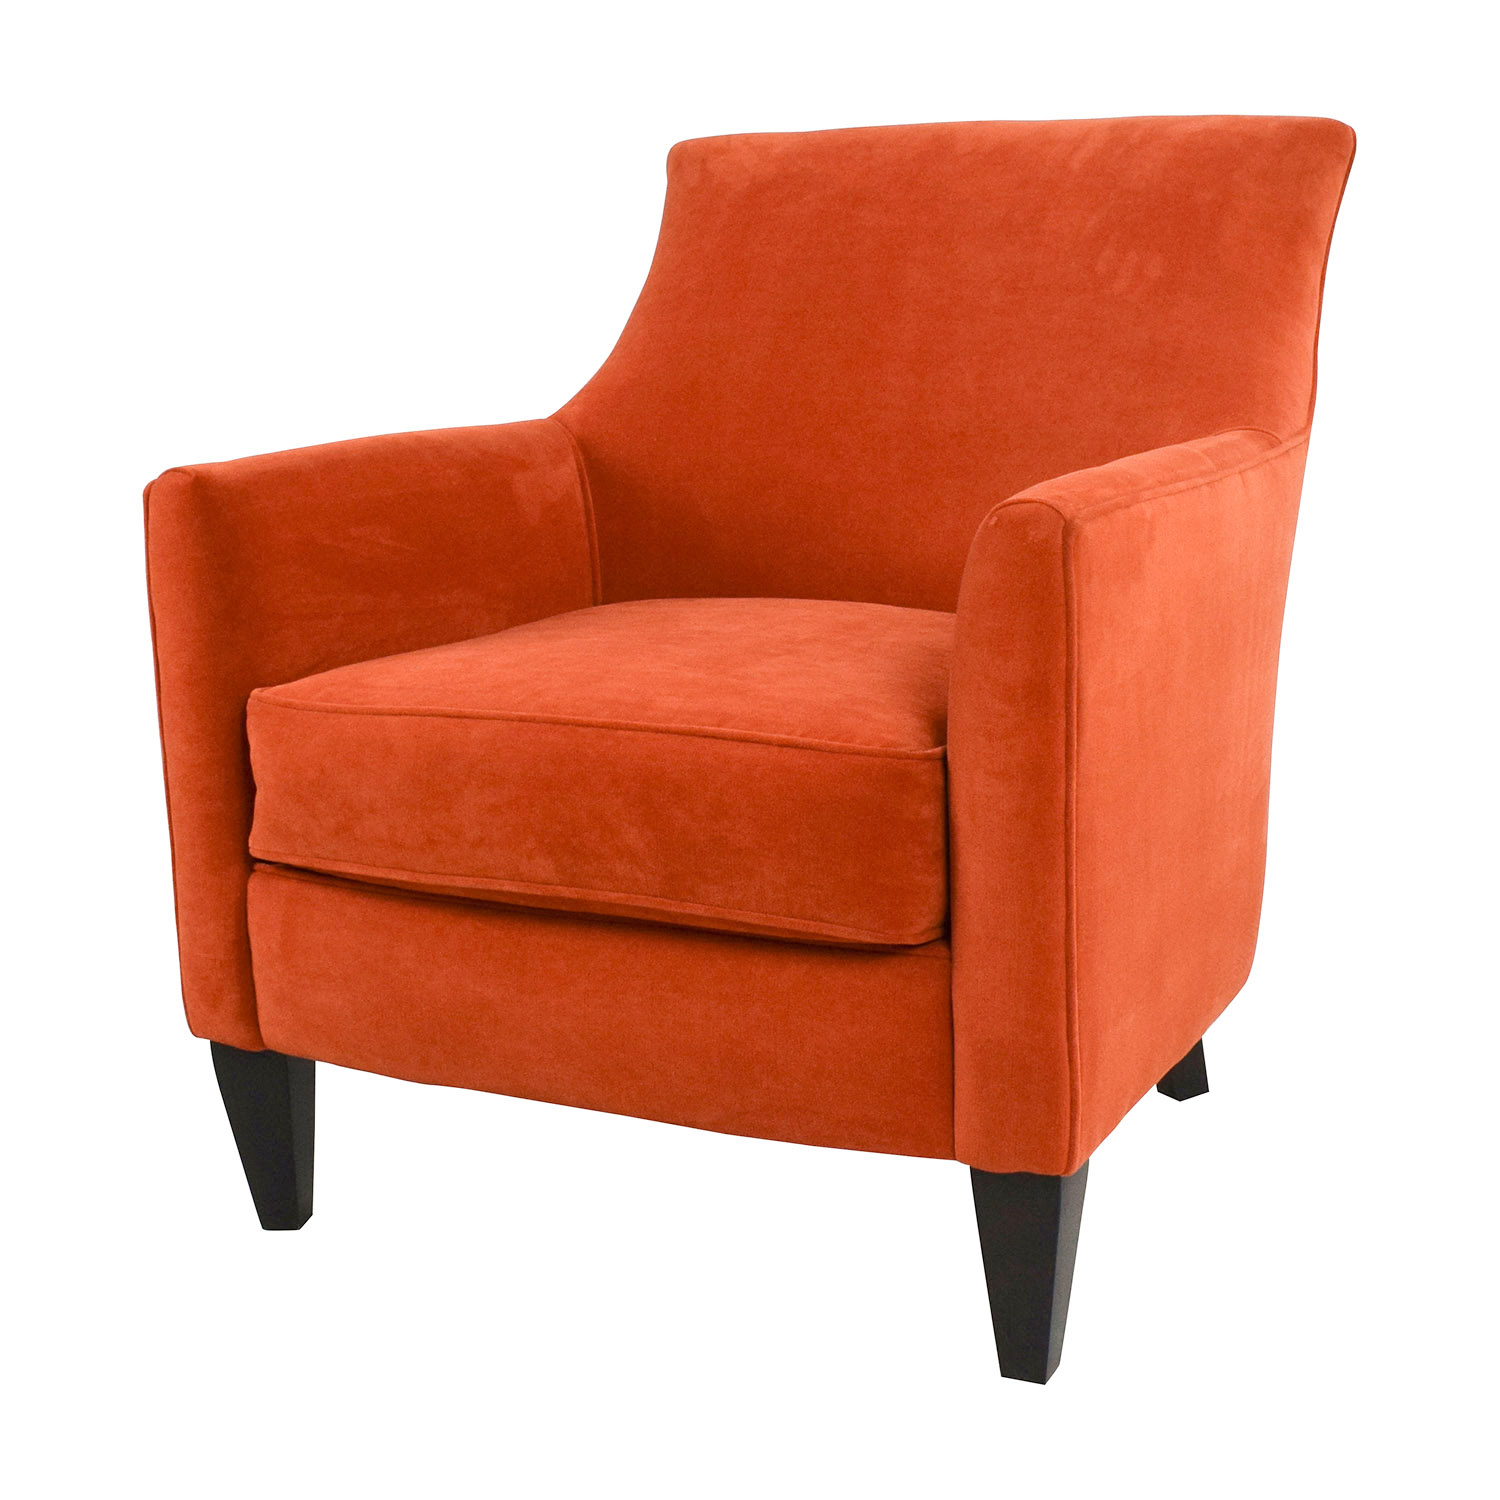 ... Crate And Barrel Crate U0026 Barrel Sunset Clara Chair Accent Chairs ...